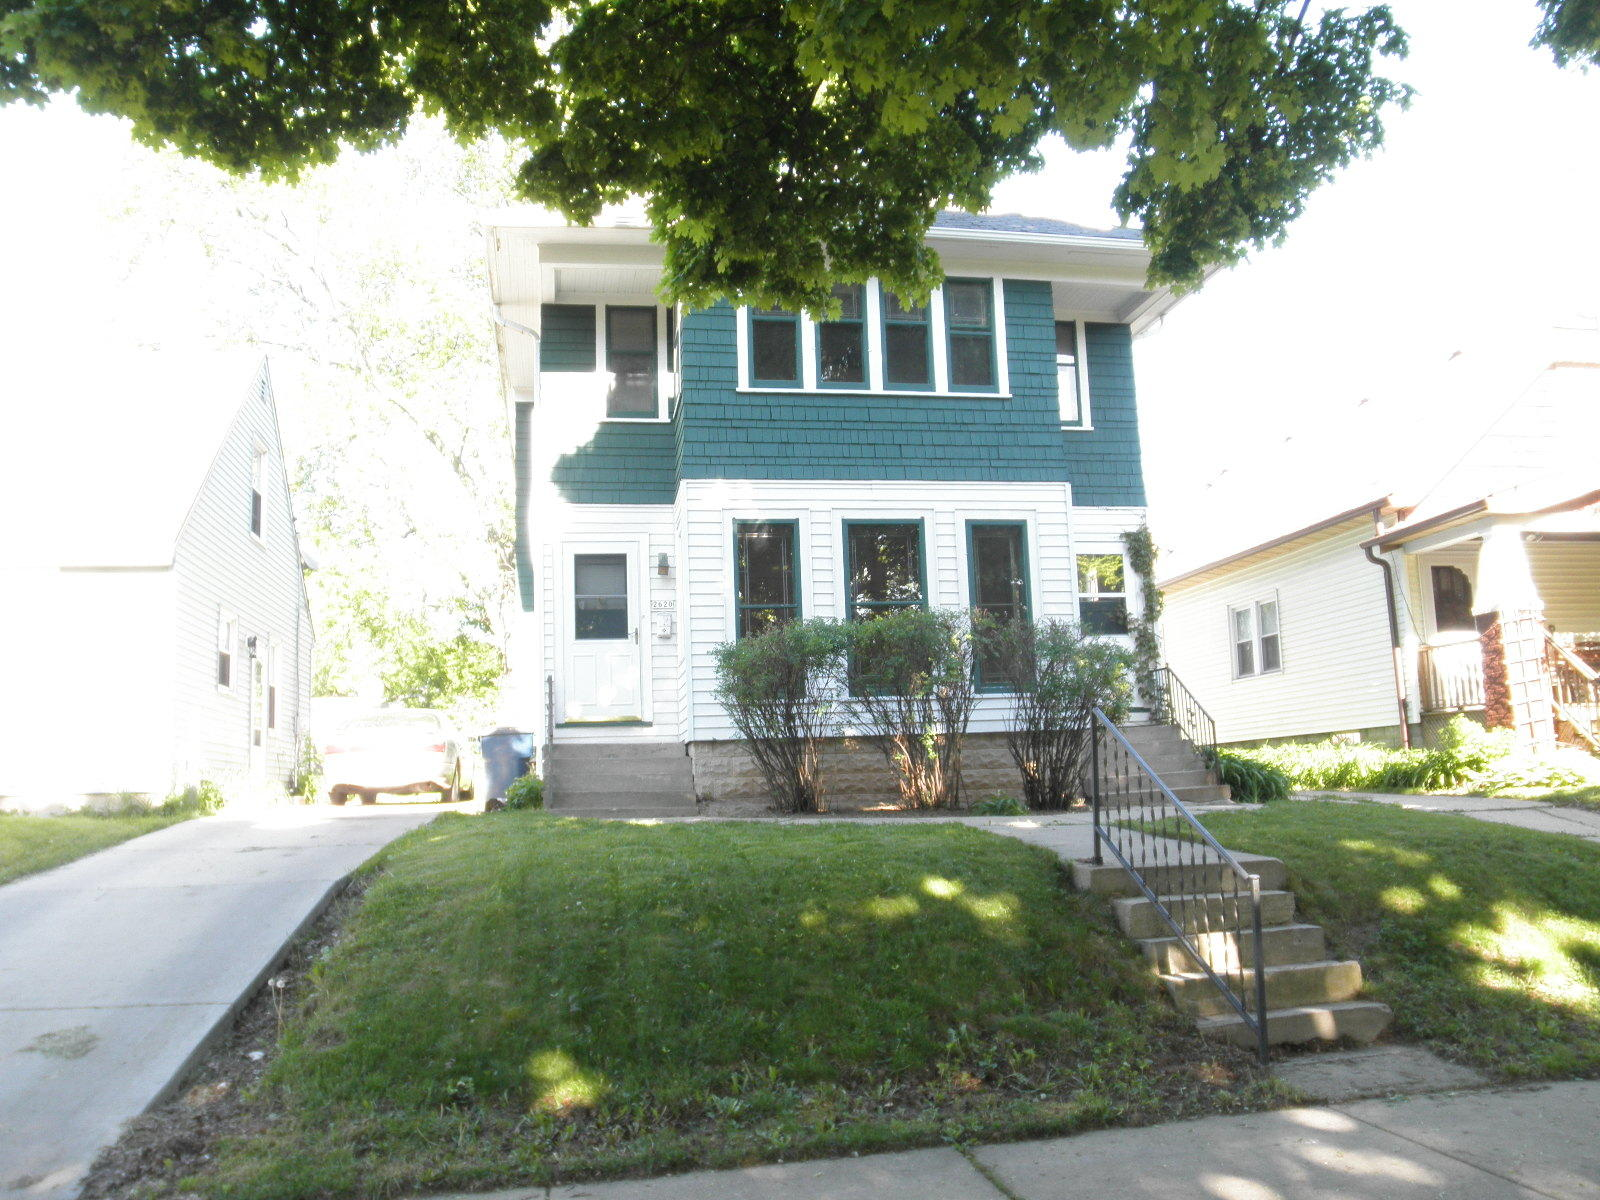 2618 59th St, Milwaukee, Wisconsin 53210, 2 Bedrooms Bedrooms, 5 Rooms Rooms,1 BathroomBathrooms,Two-Family,For Sale,59th St,1,1691392